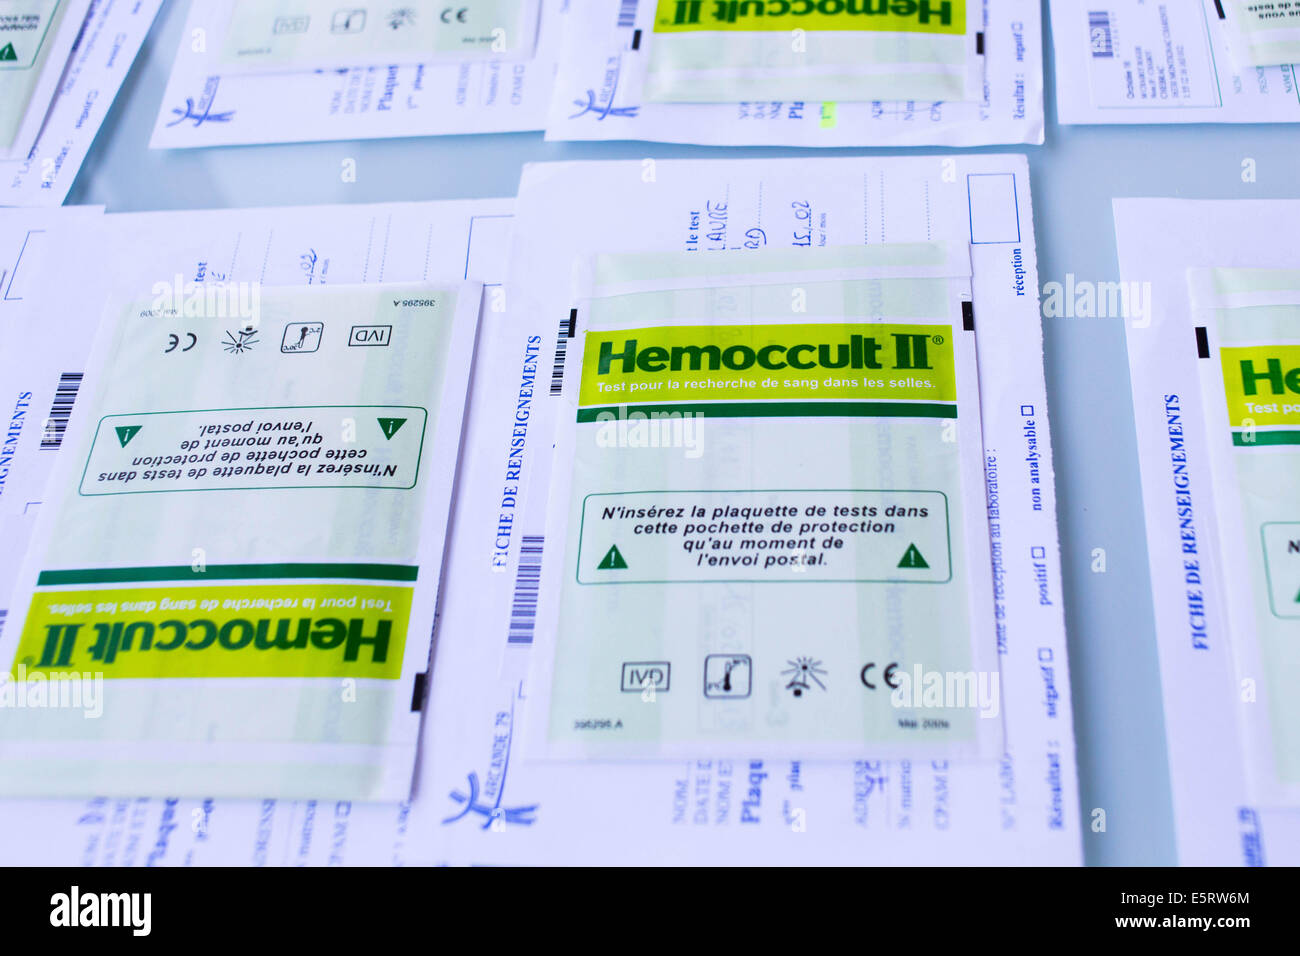 Hemoccult Test Stock Photos Hemoccult Test Stock Images Alamy